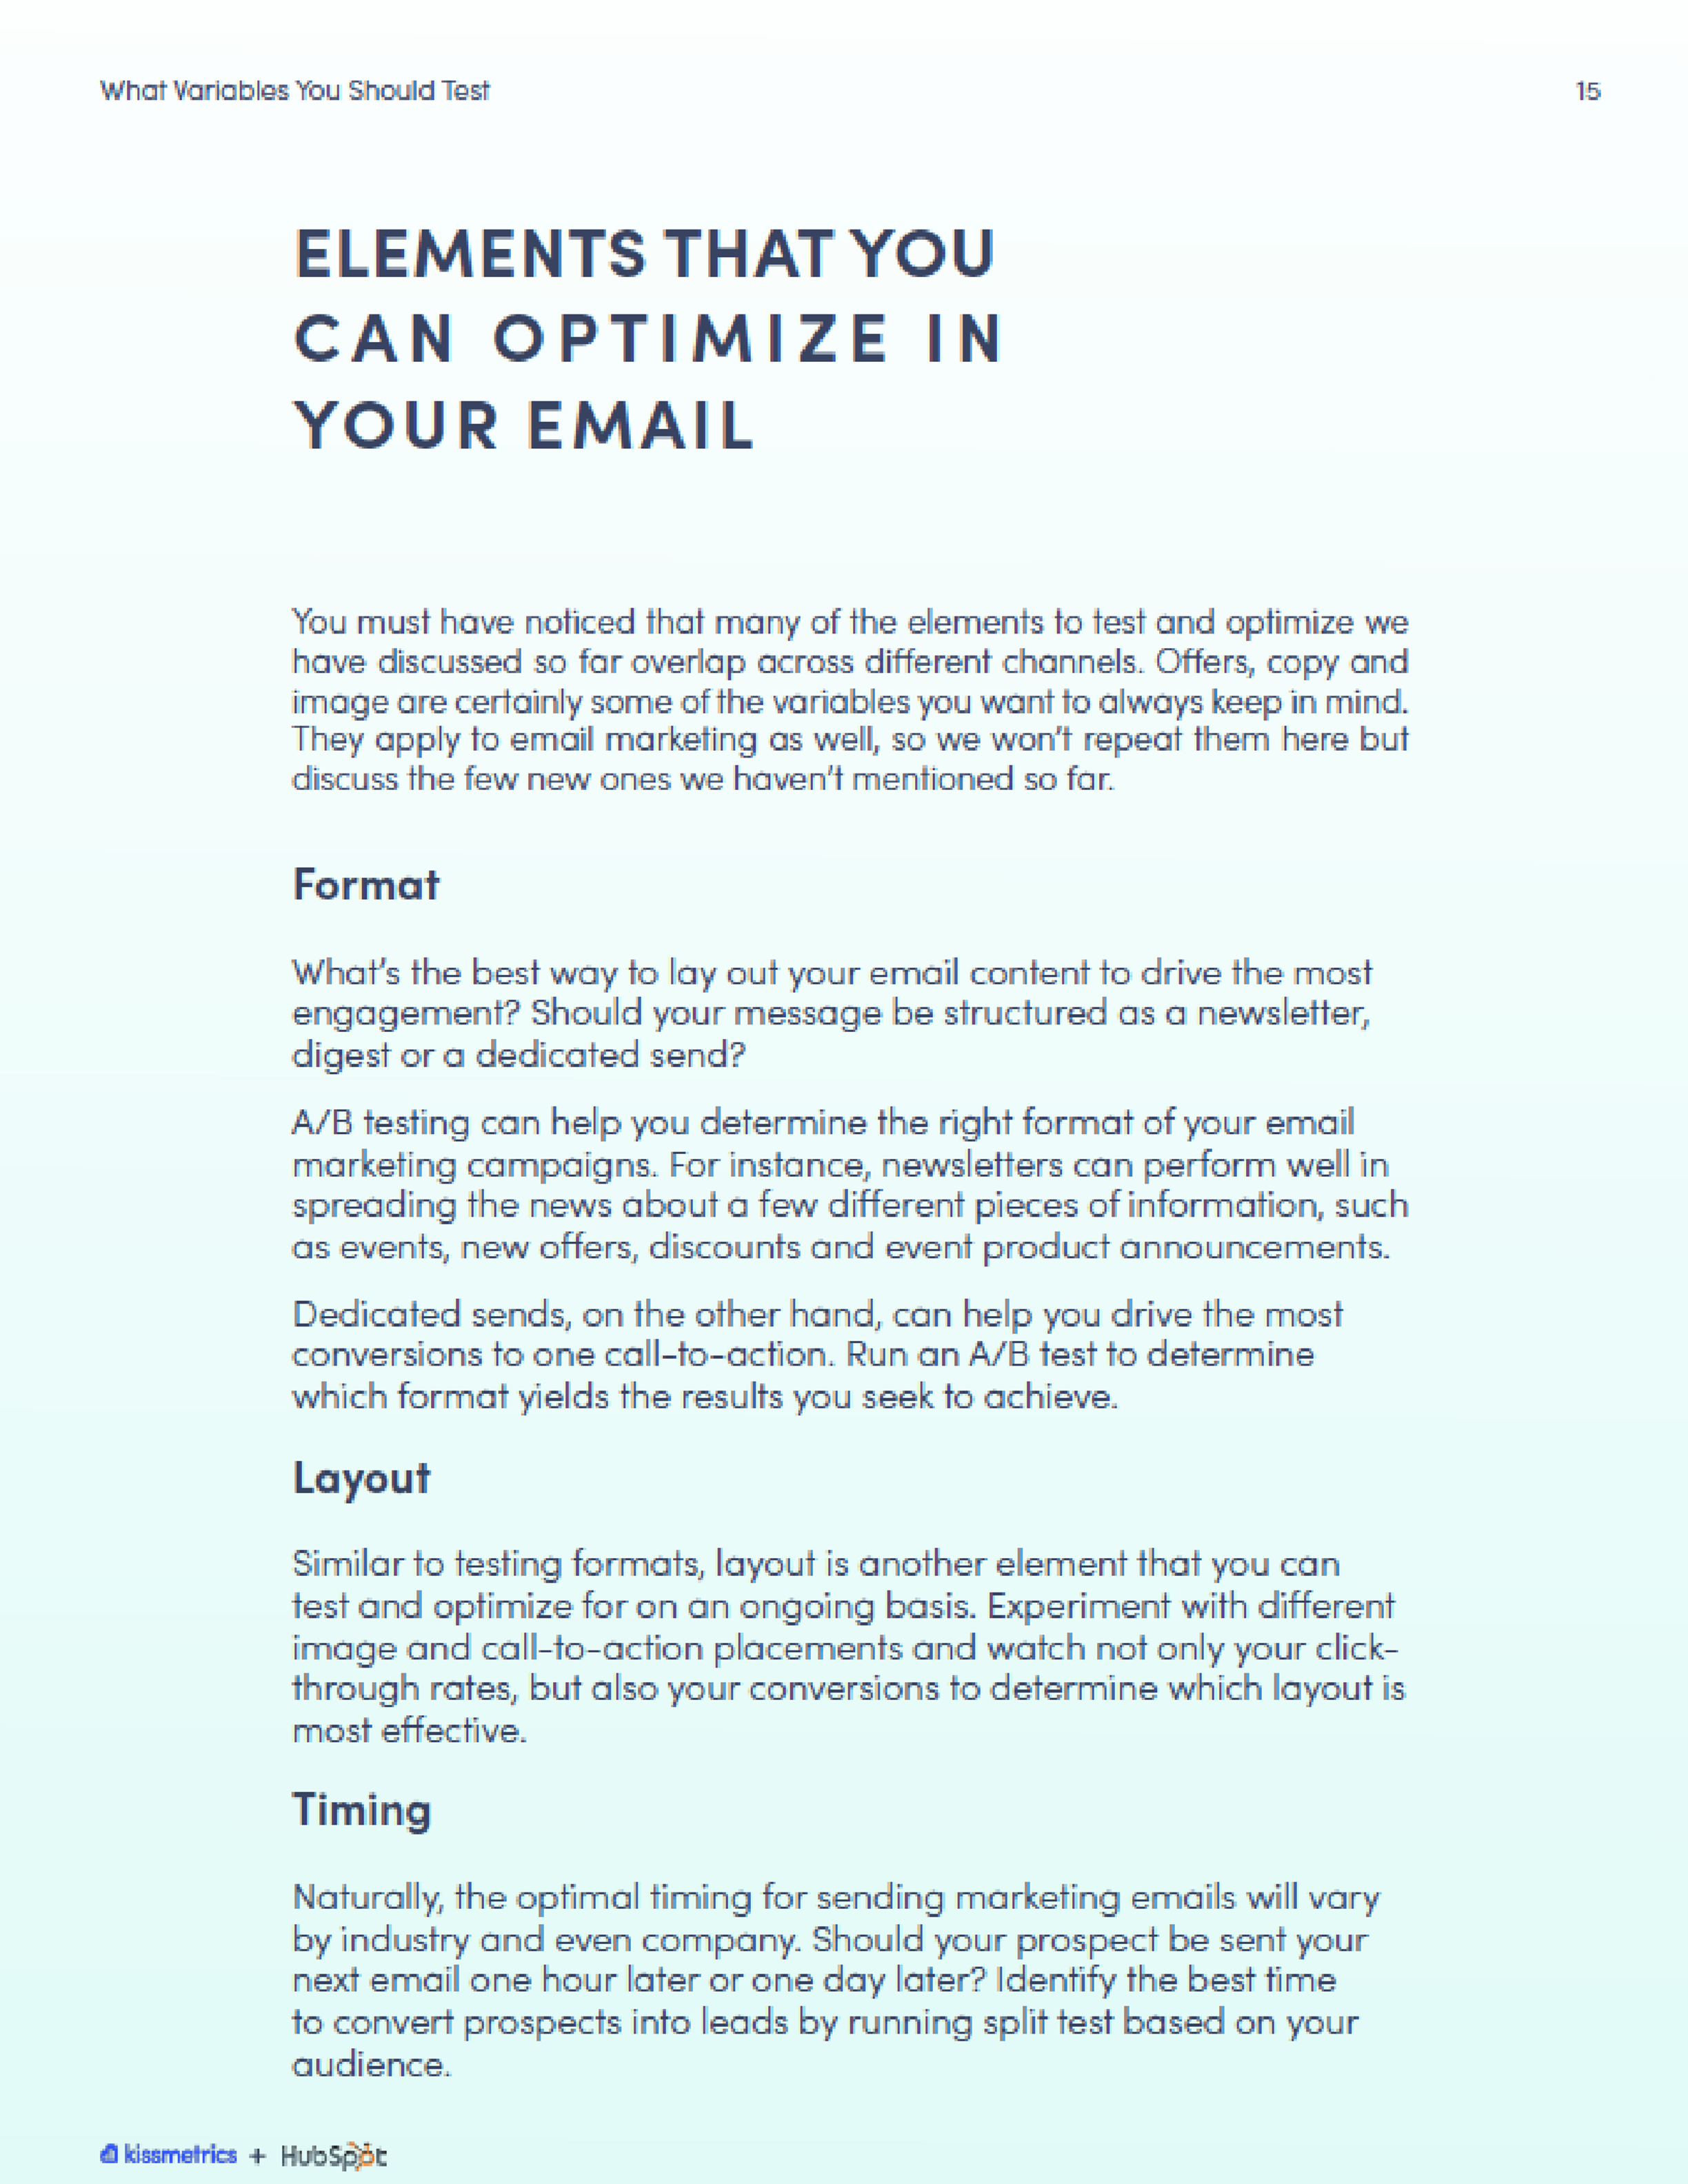 Elements you can optimize in your email